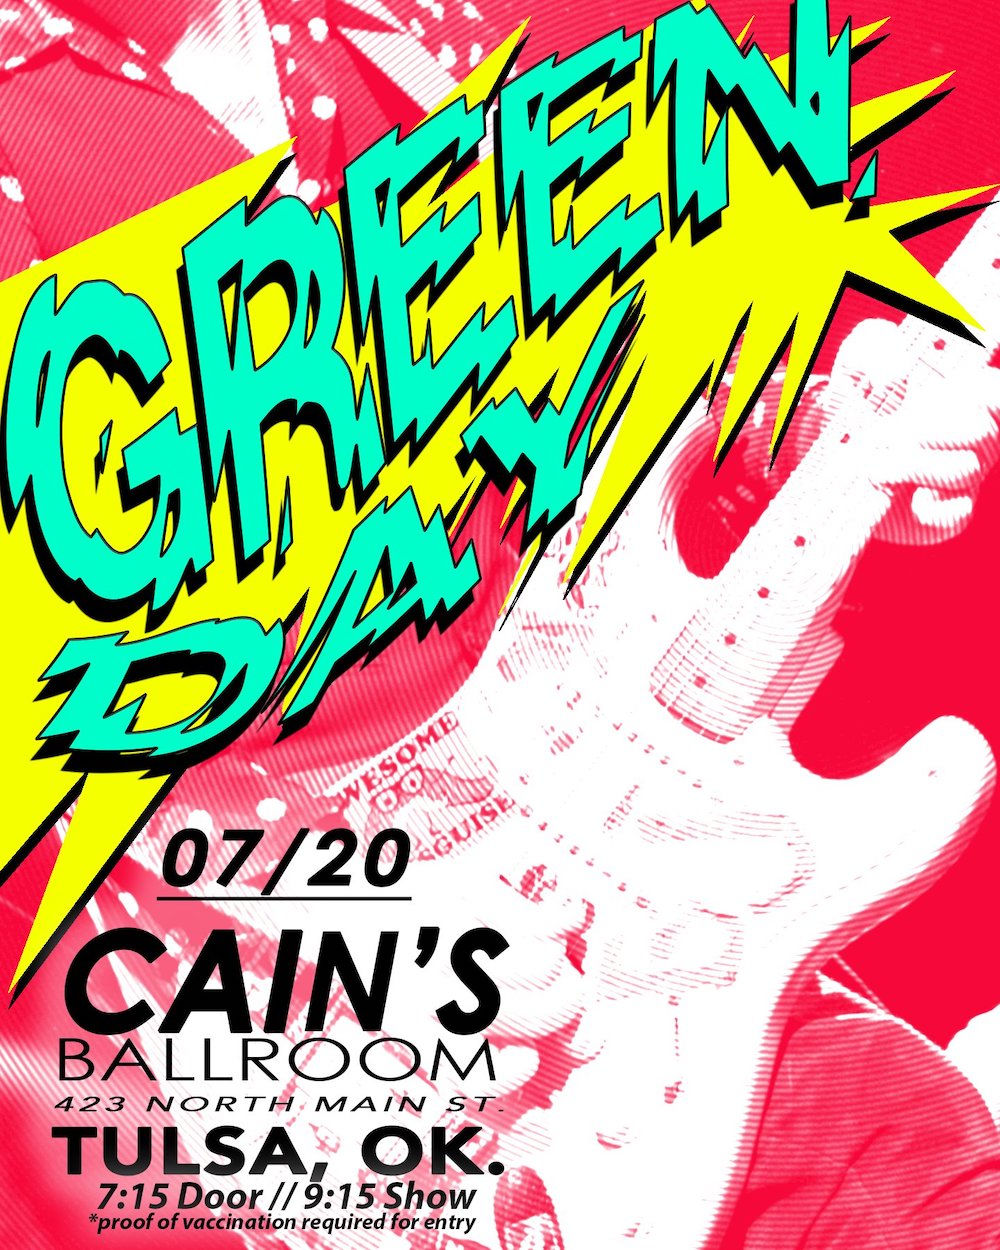 Green Day Concert Poster - 2021